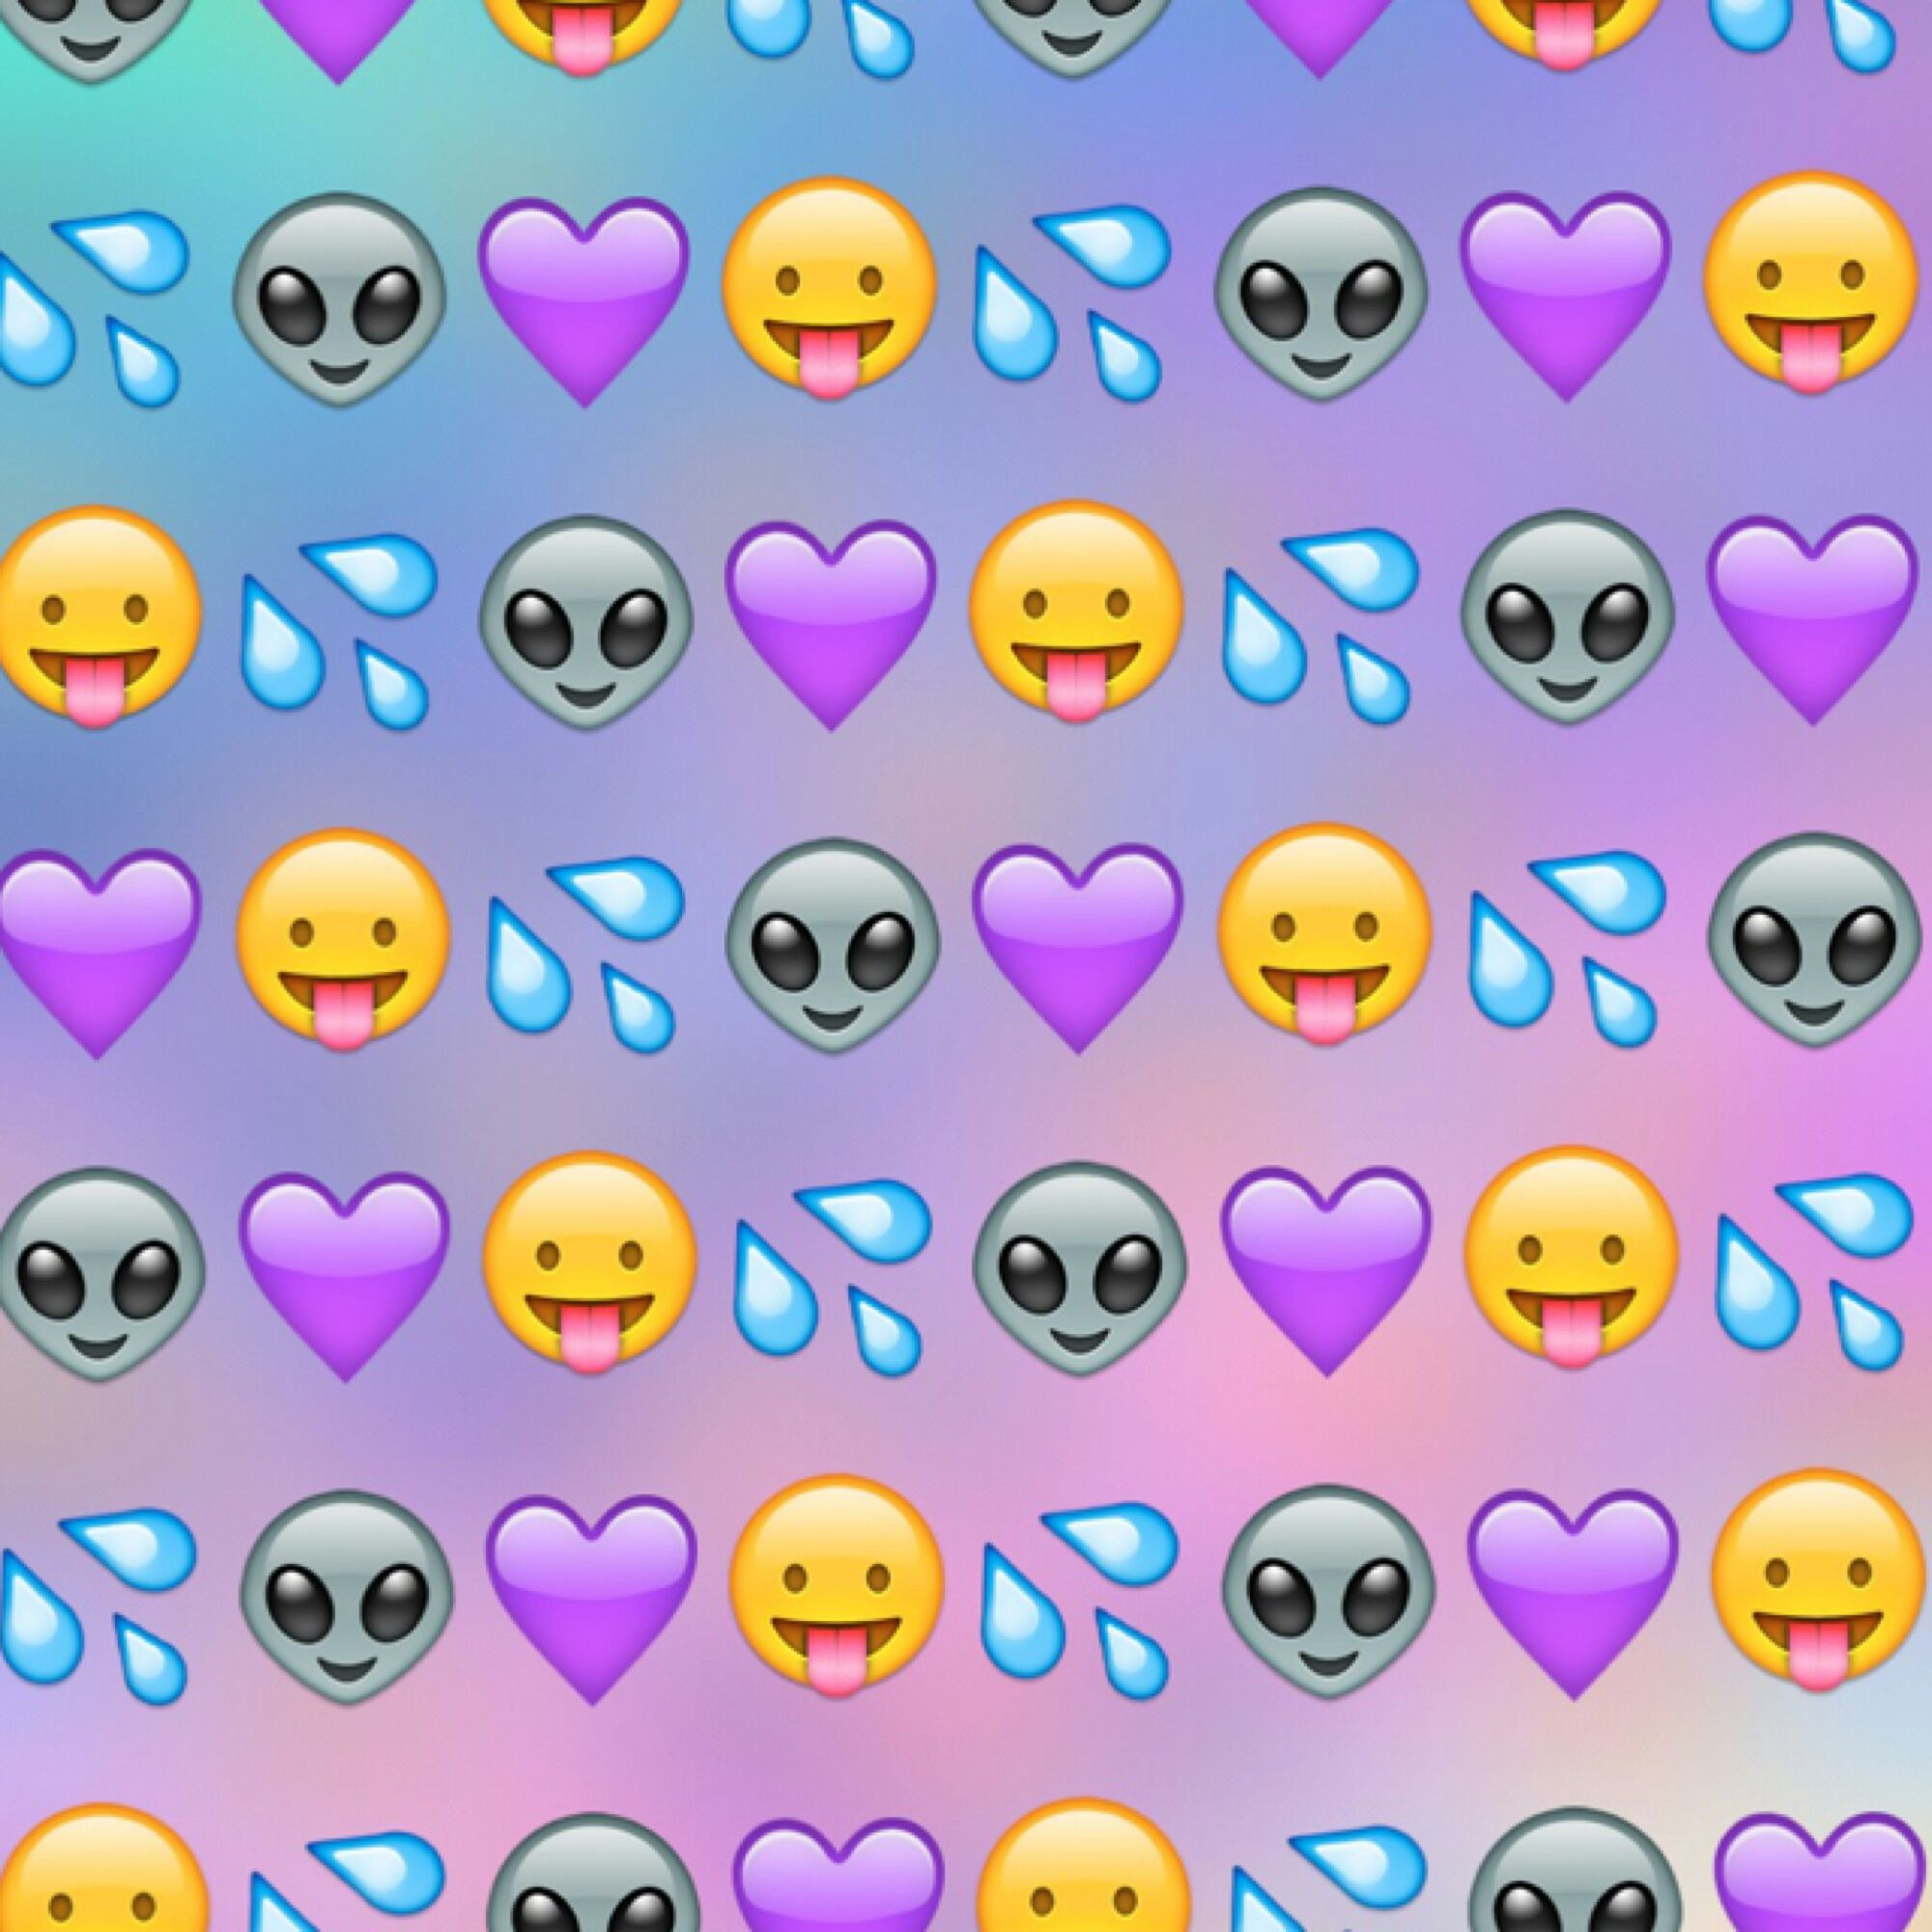 Good Wallpaper Love Emoji - 6c40d16accd76bc40bd4d5228c9ebd03  Snapshot_464516.jpg